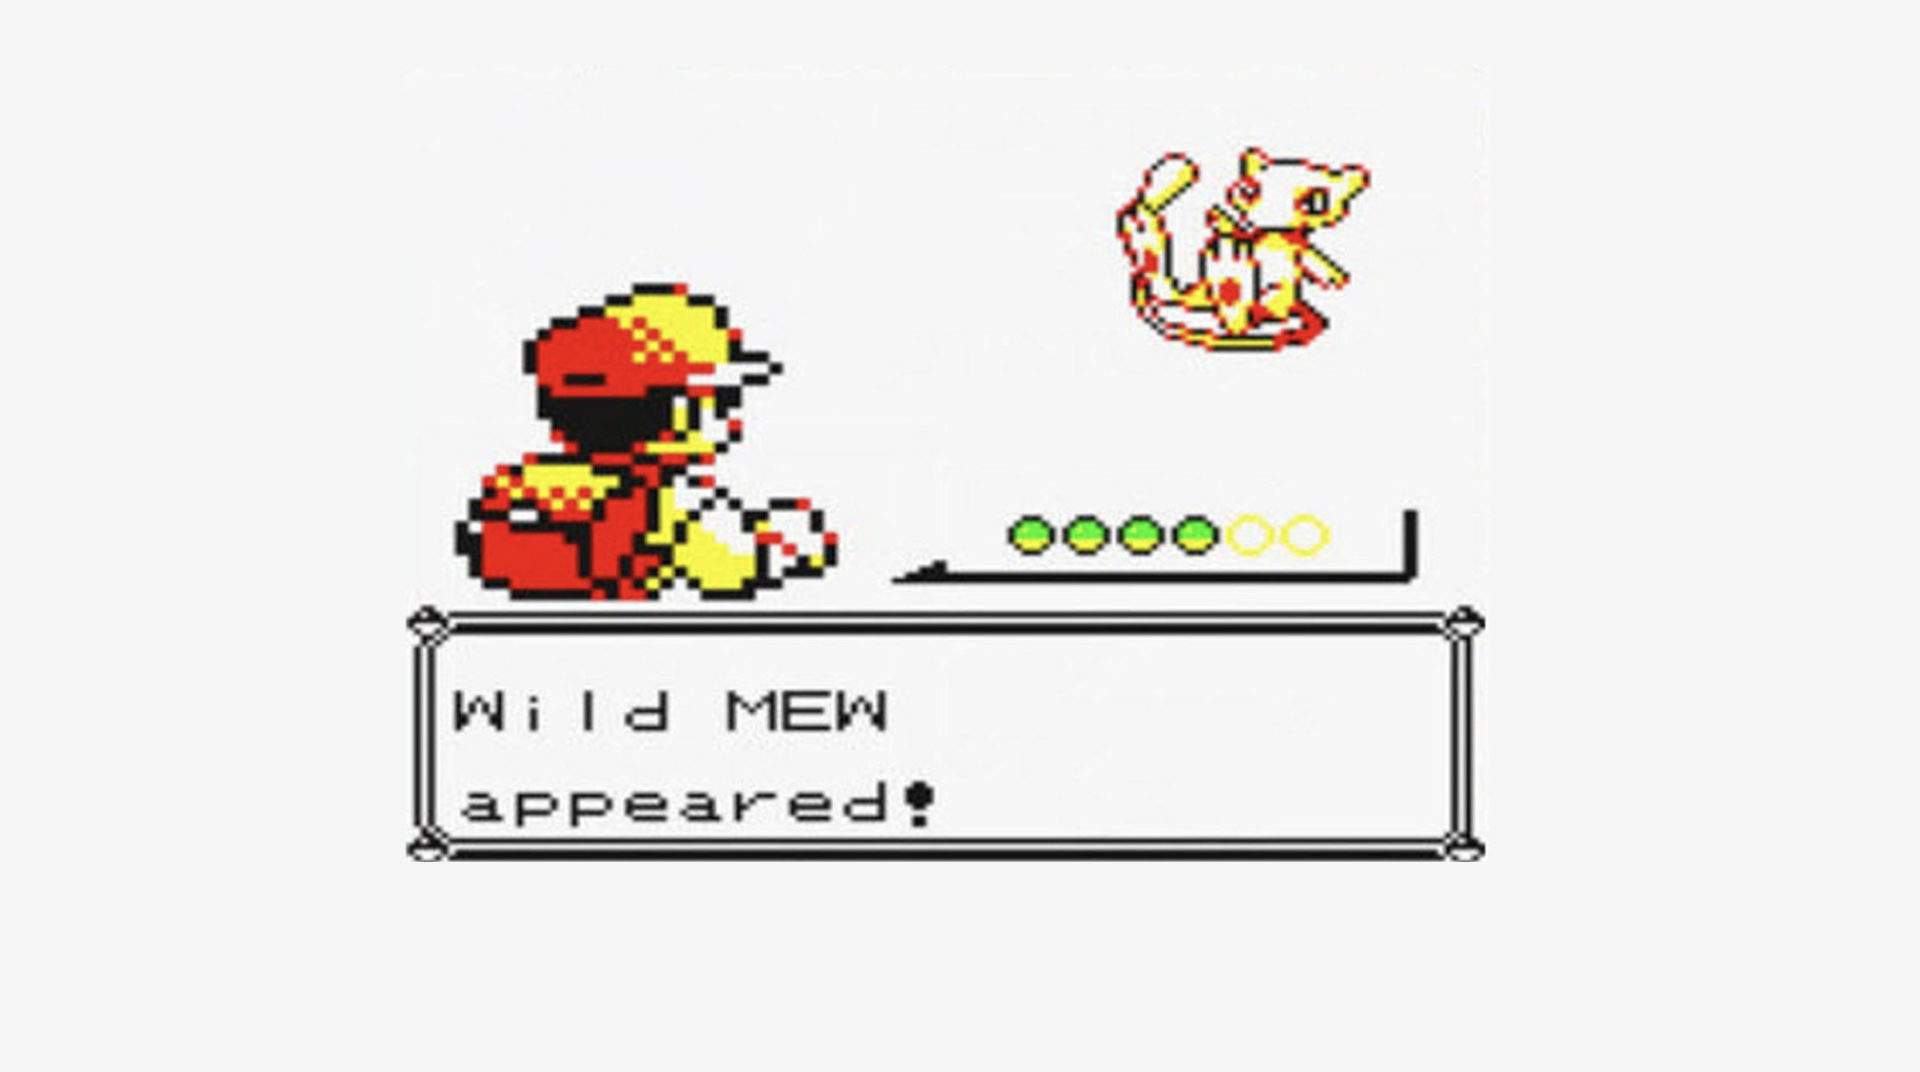 Screenshot of Mew in Pokemon Red & Blue from 1996.